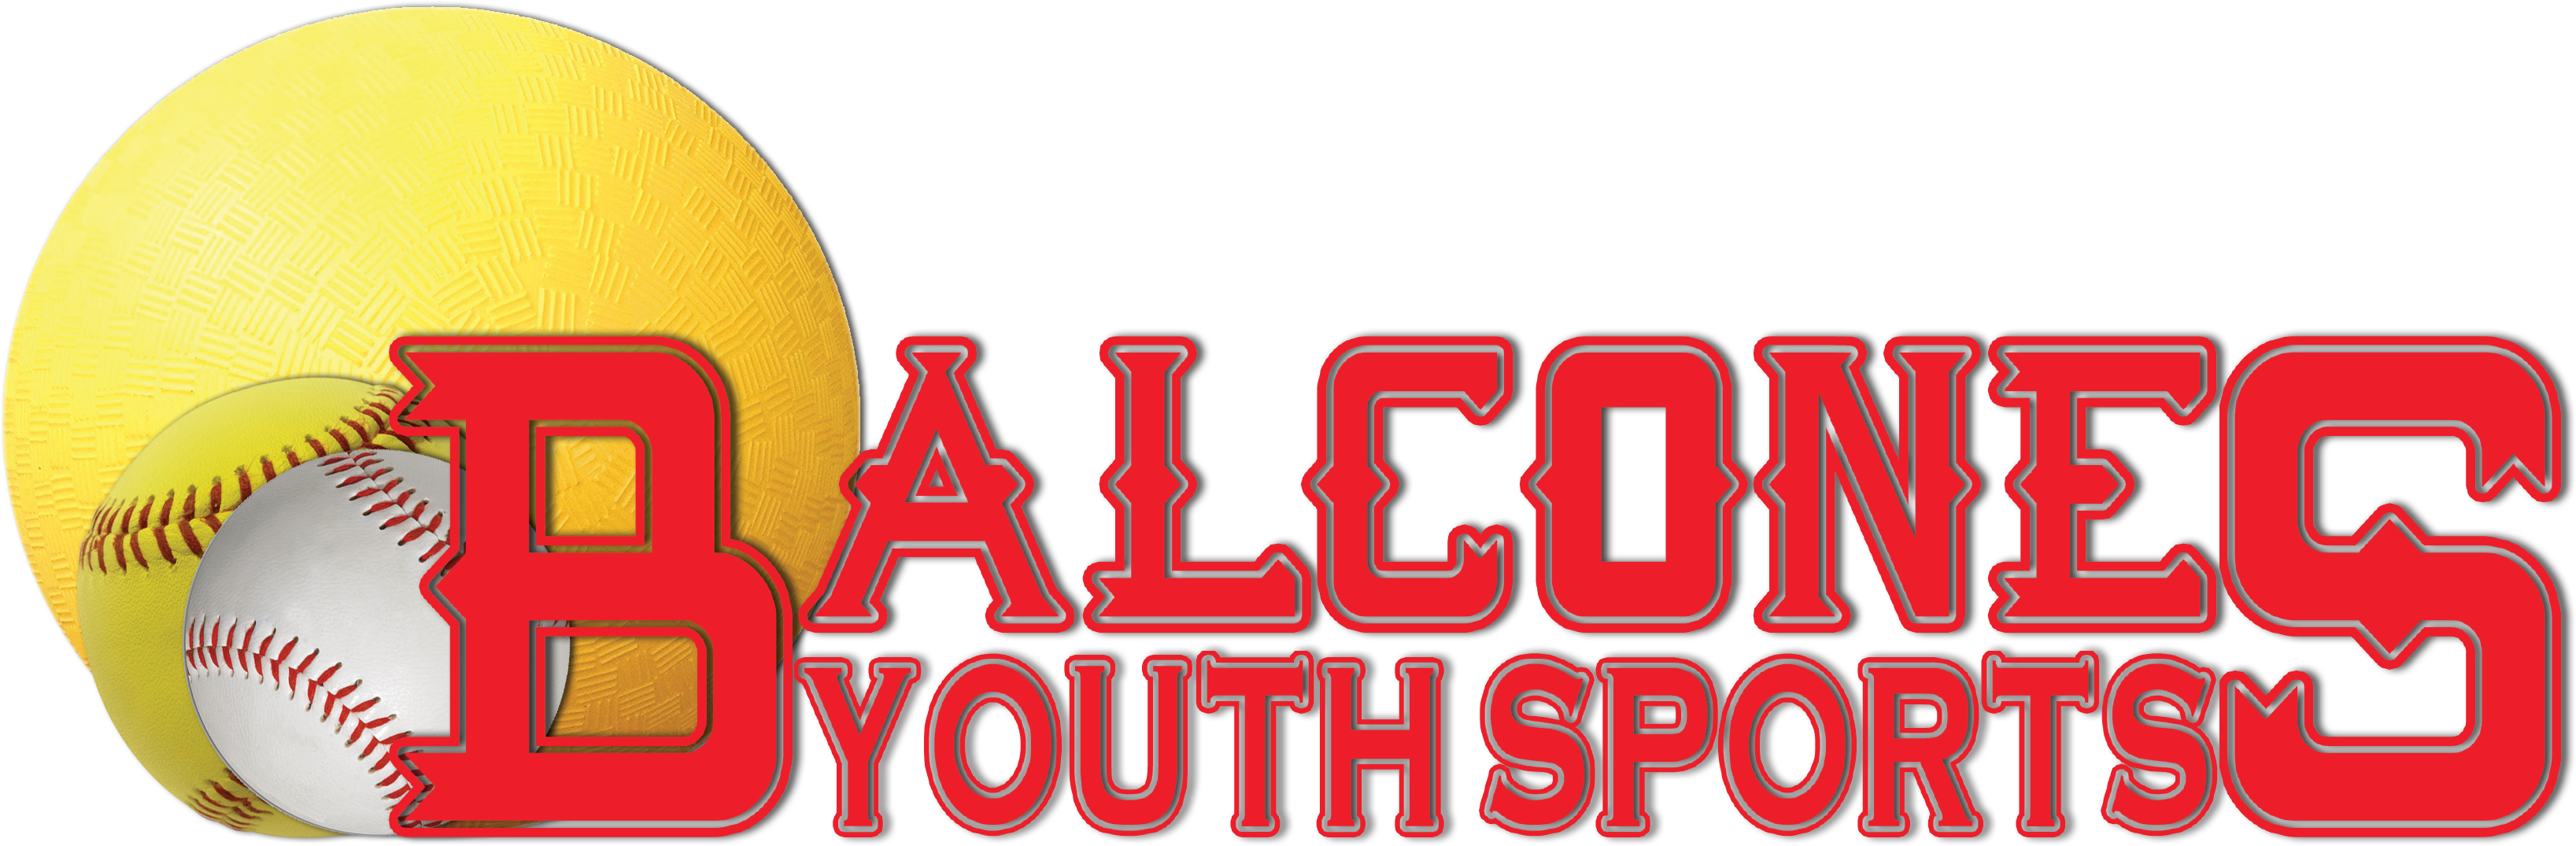 Balcones youth sports